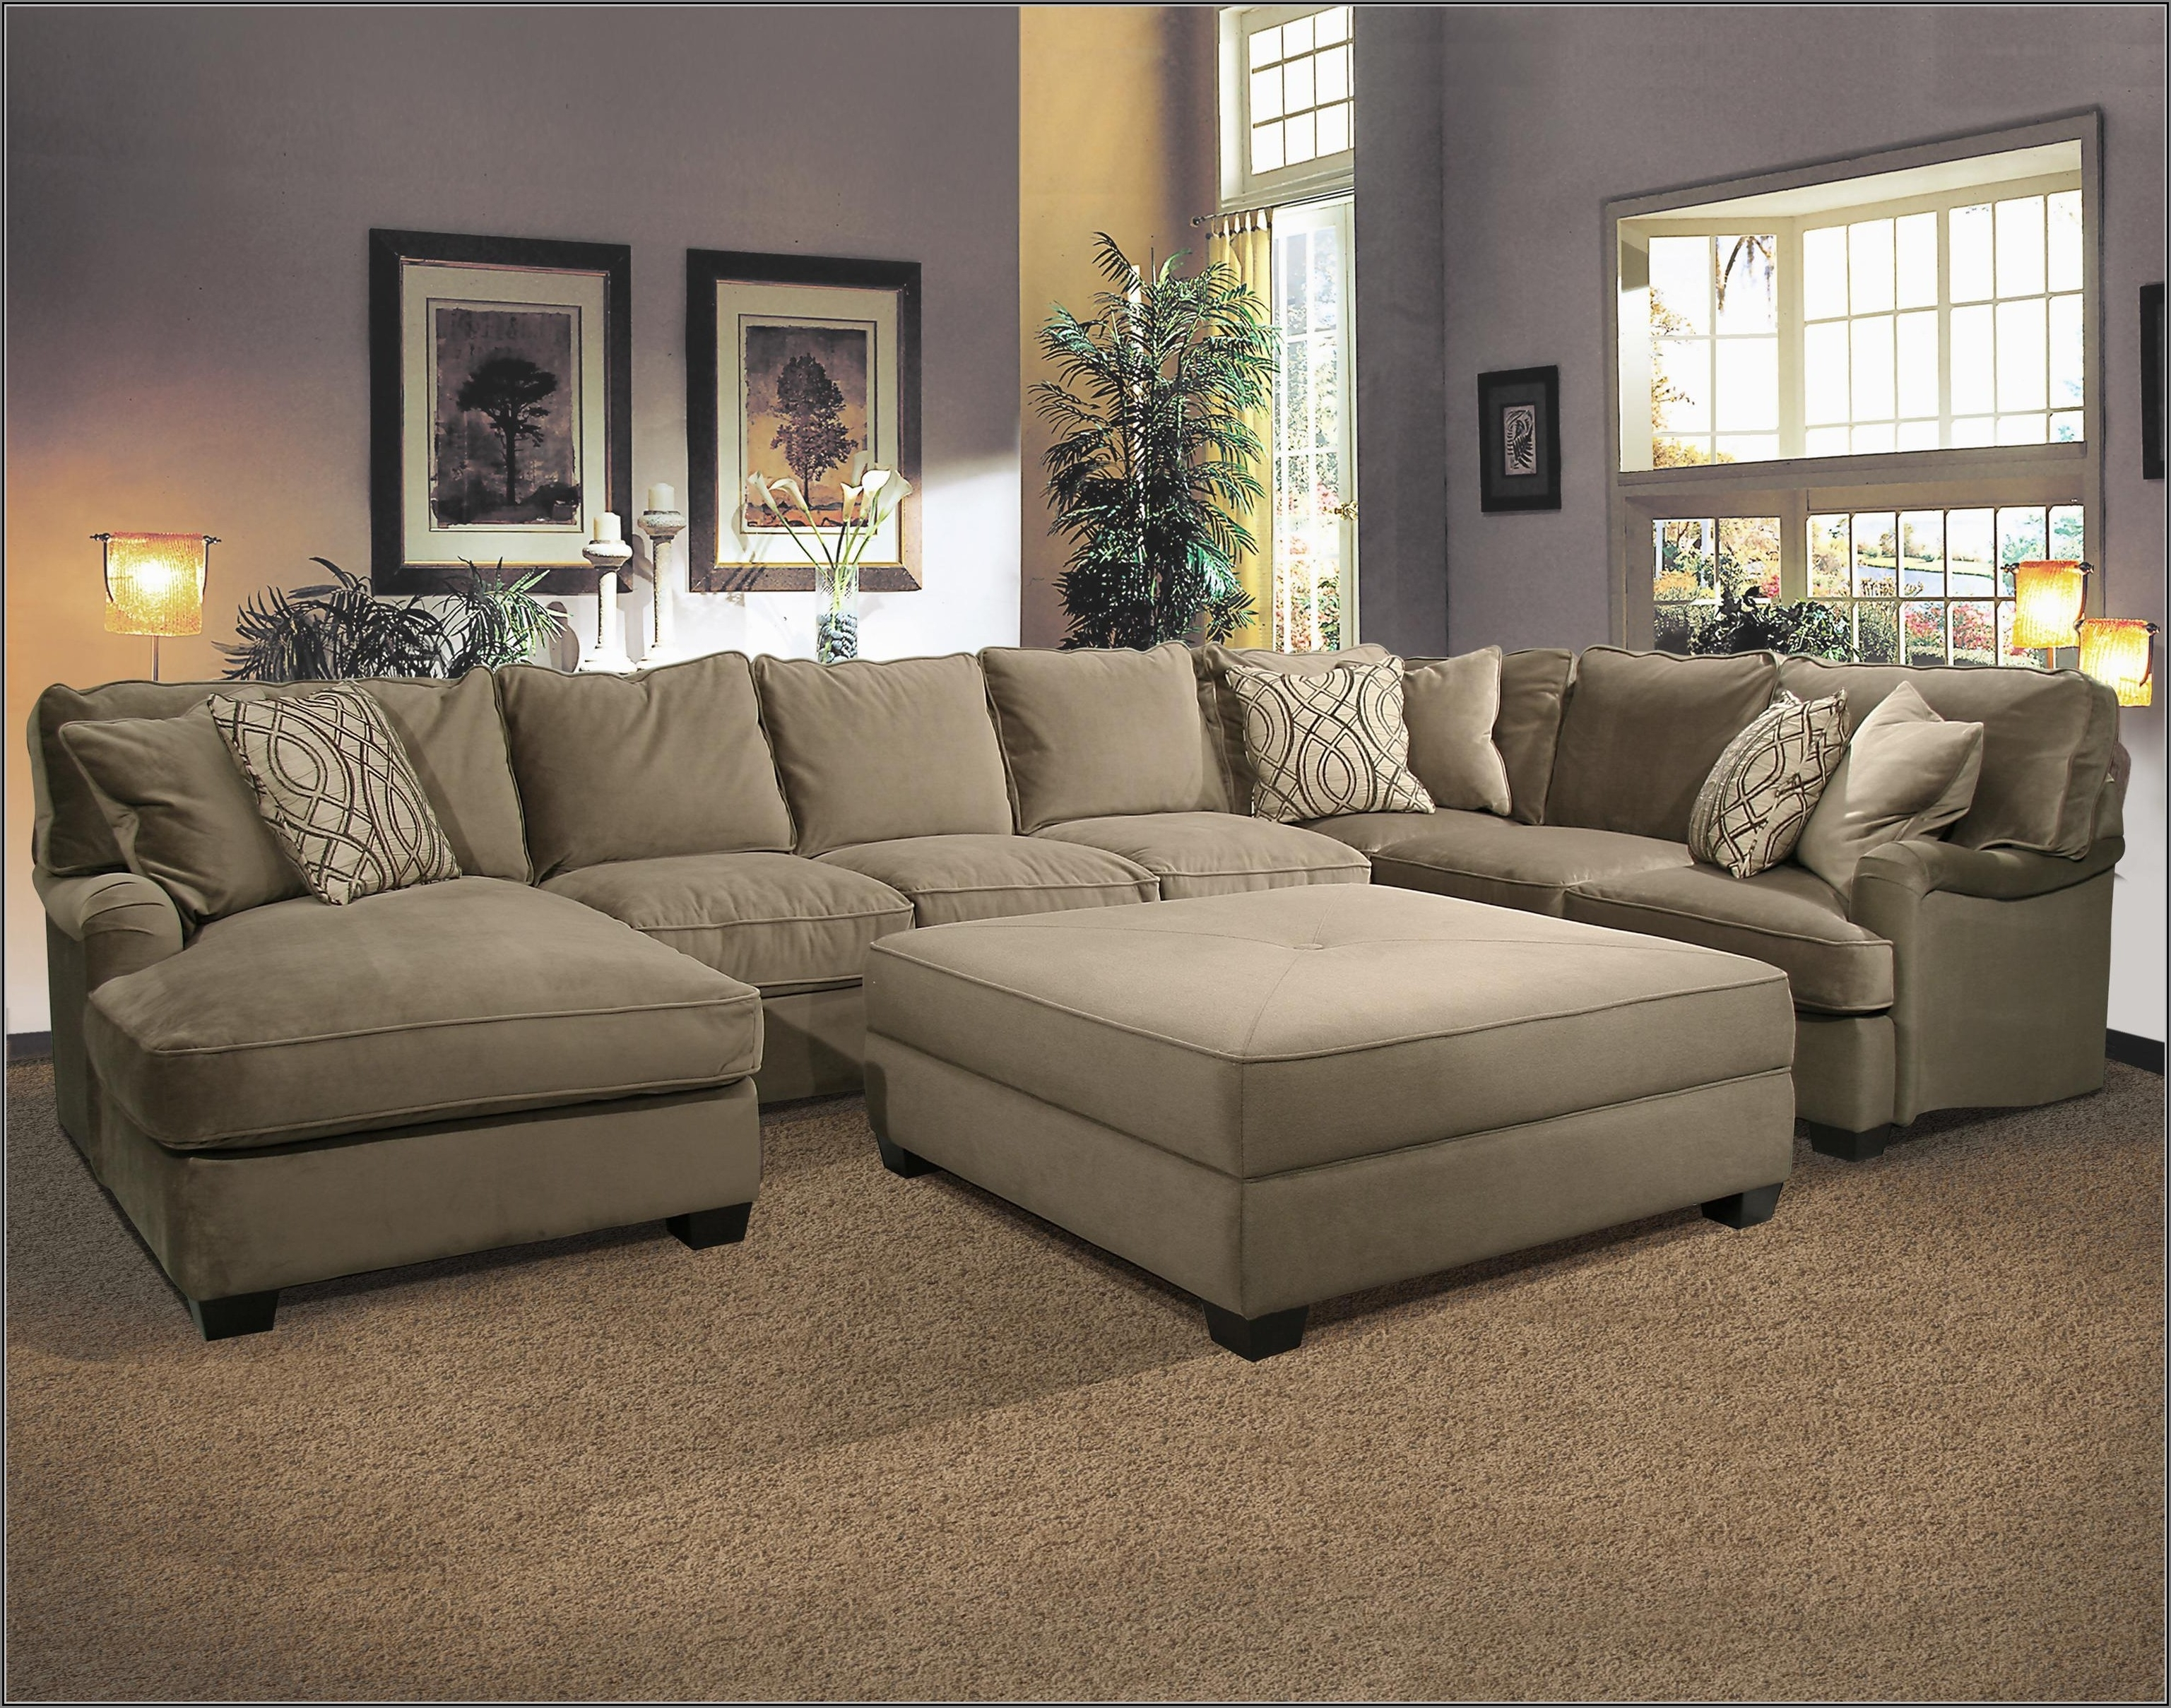 Epic Large Fabric Sectional Sofas 21 On 3 Piece Sectional Sleeper For Popular 3 Piece Sectional Sleeper Sofas (View 6 of 15)